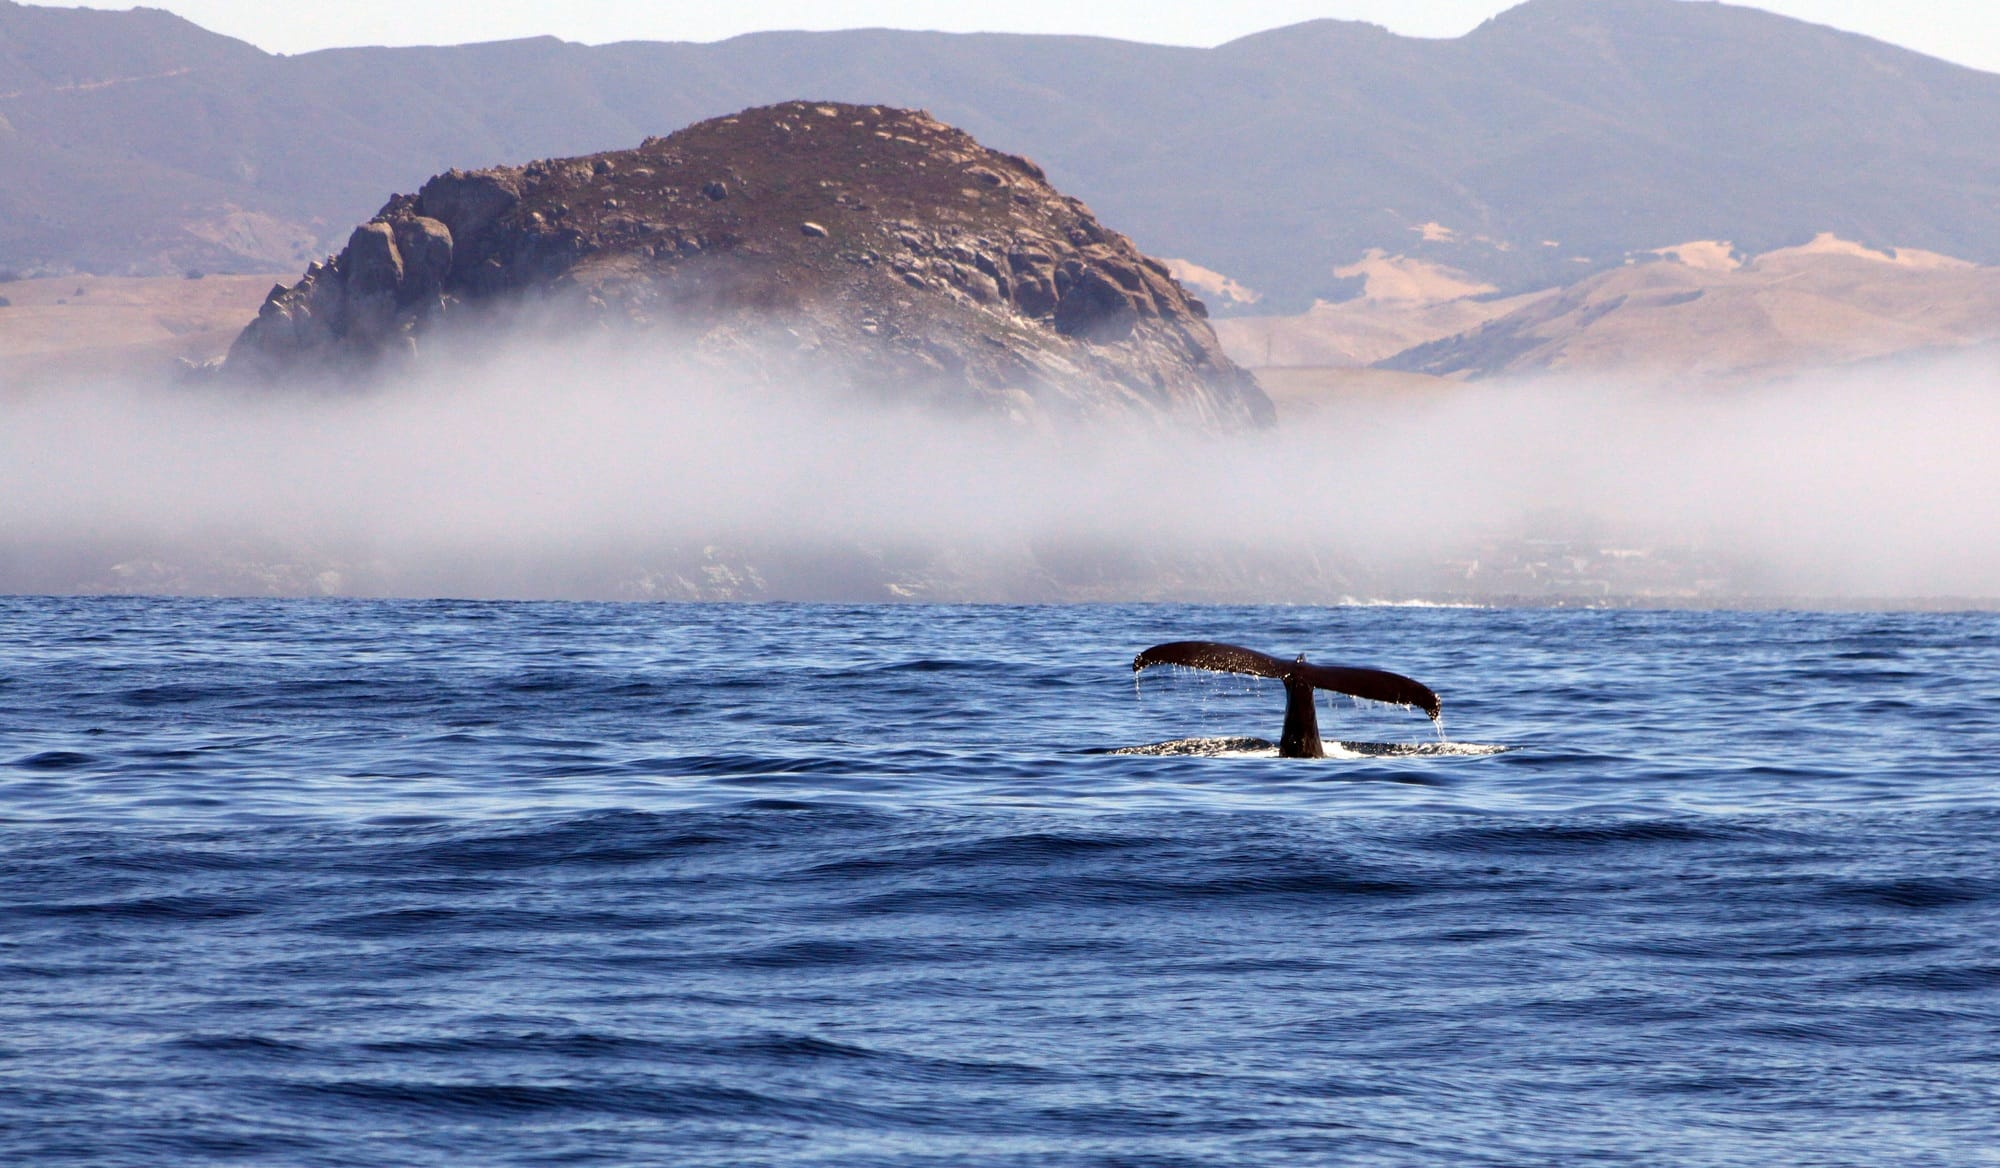 Morro Bay Whale Watching // Plan a 6-day California coast road trip from Ventura to Cambria with this itinerary packed with outdoor adventure, amazing food, and unique places to stay.